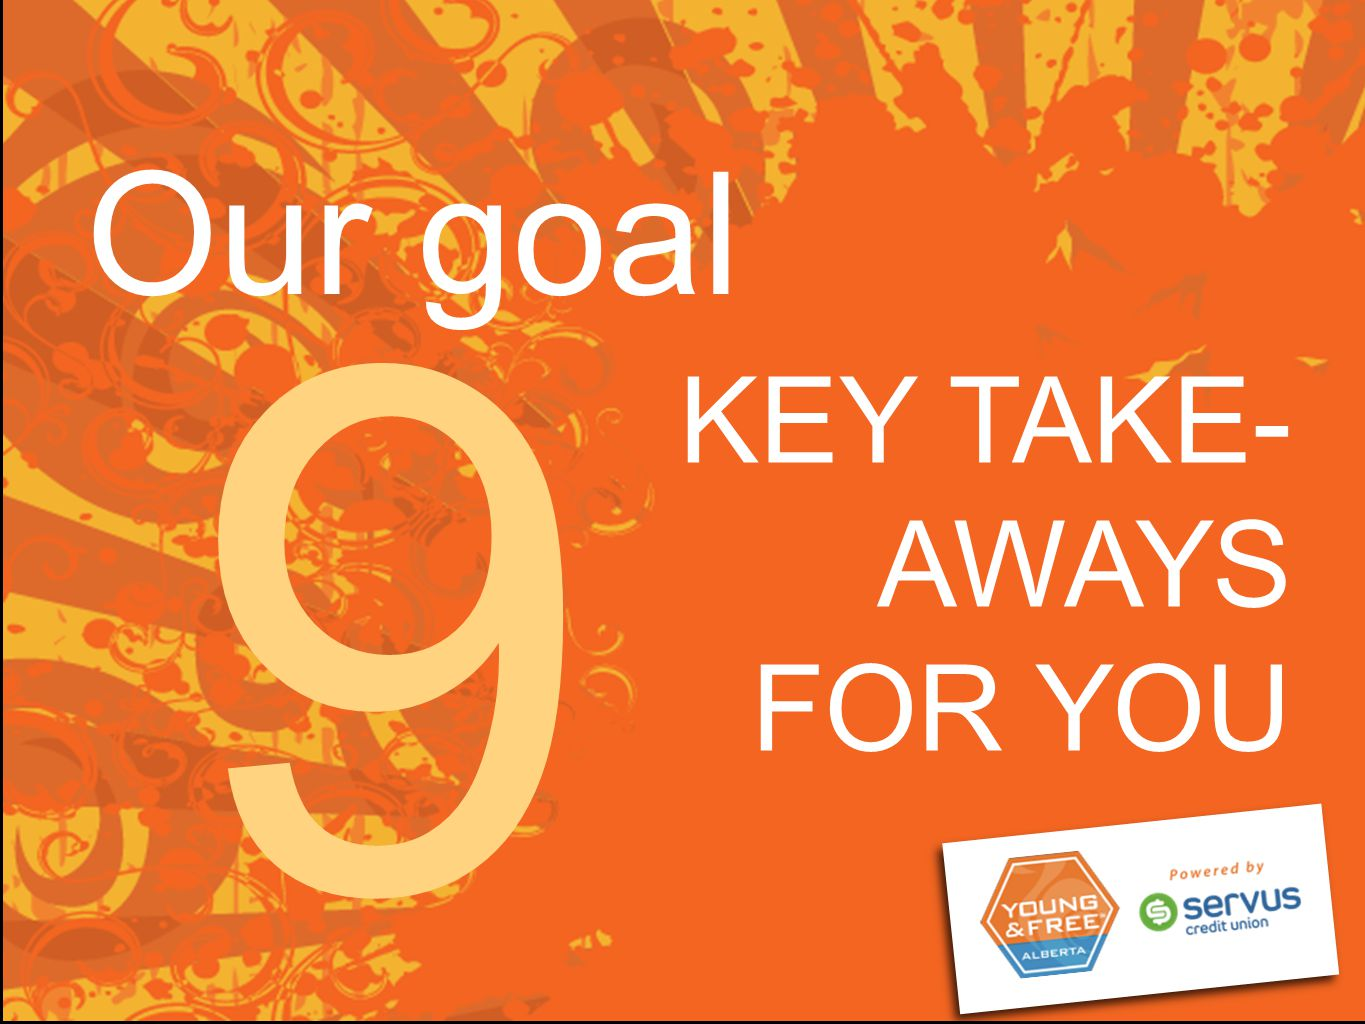 Our goal KEY TAKE- AWAYS FOR YOU 9